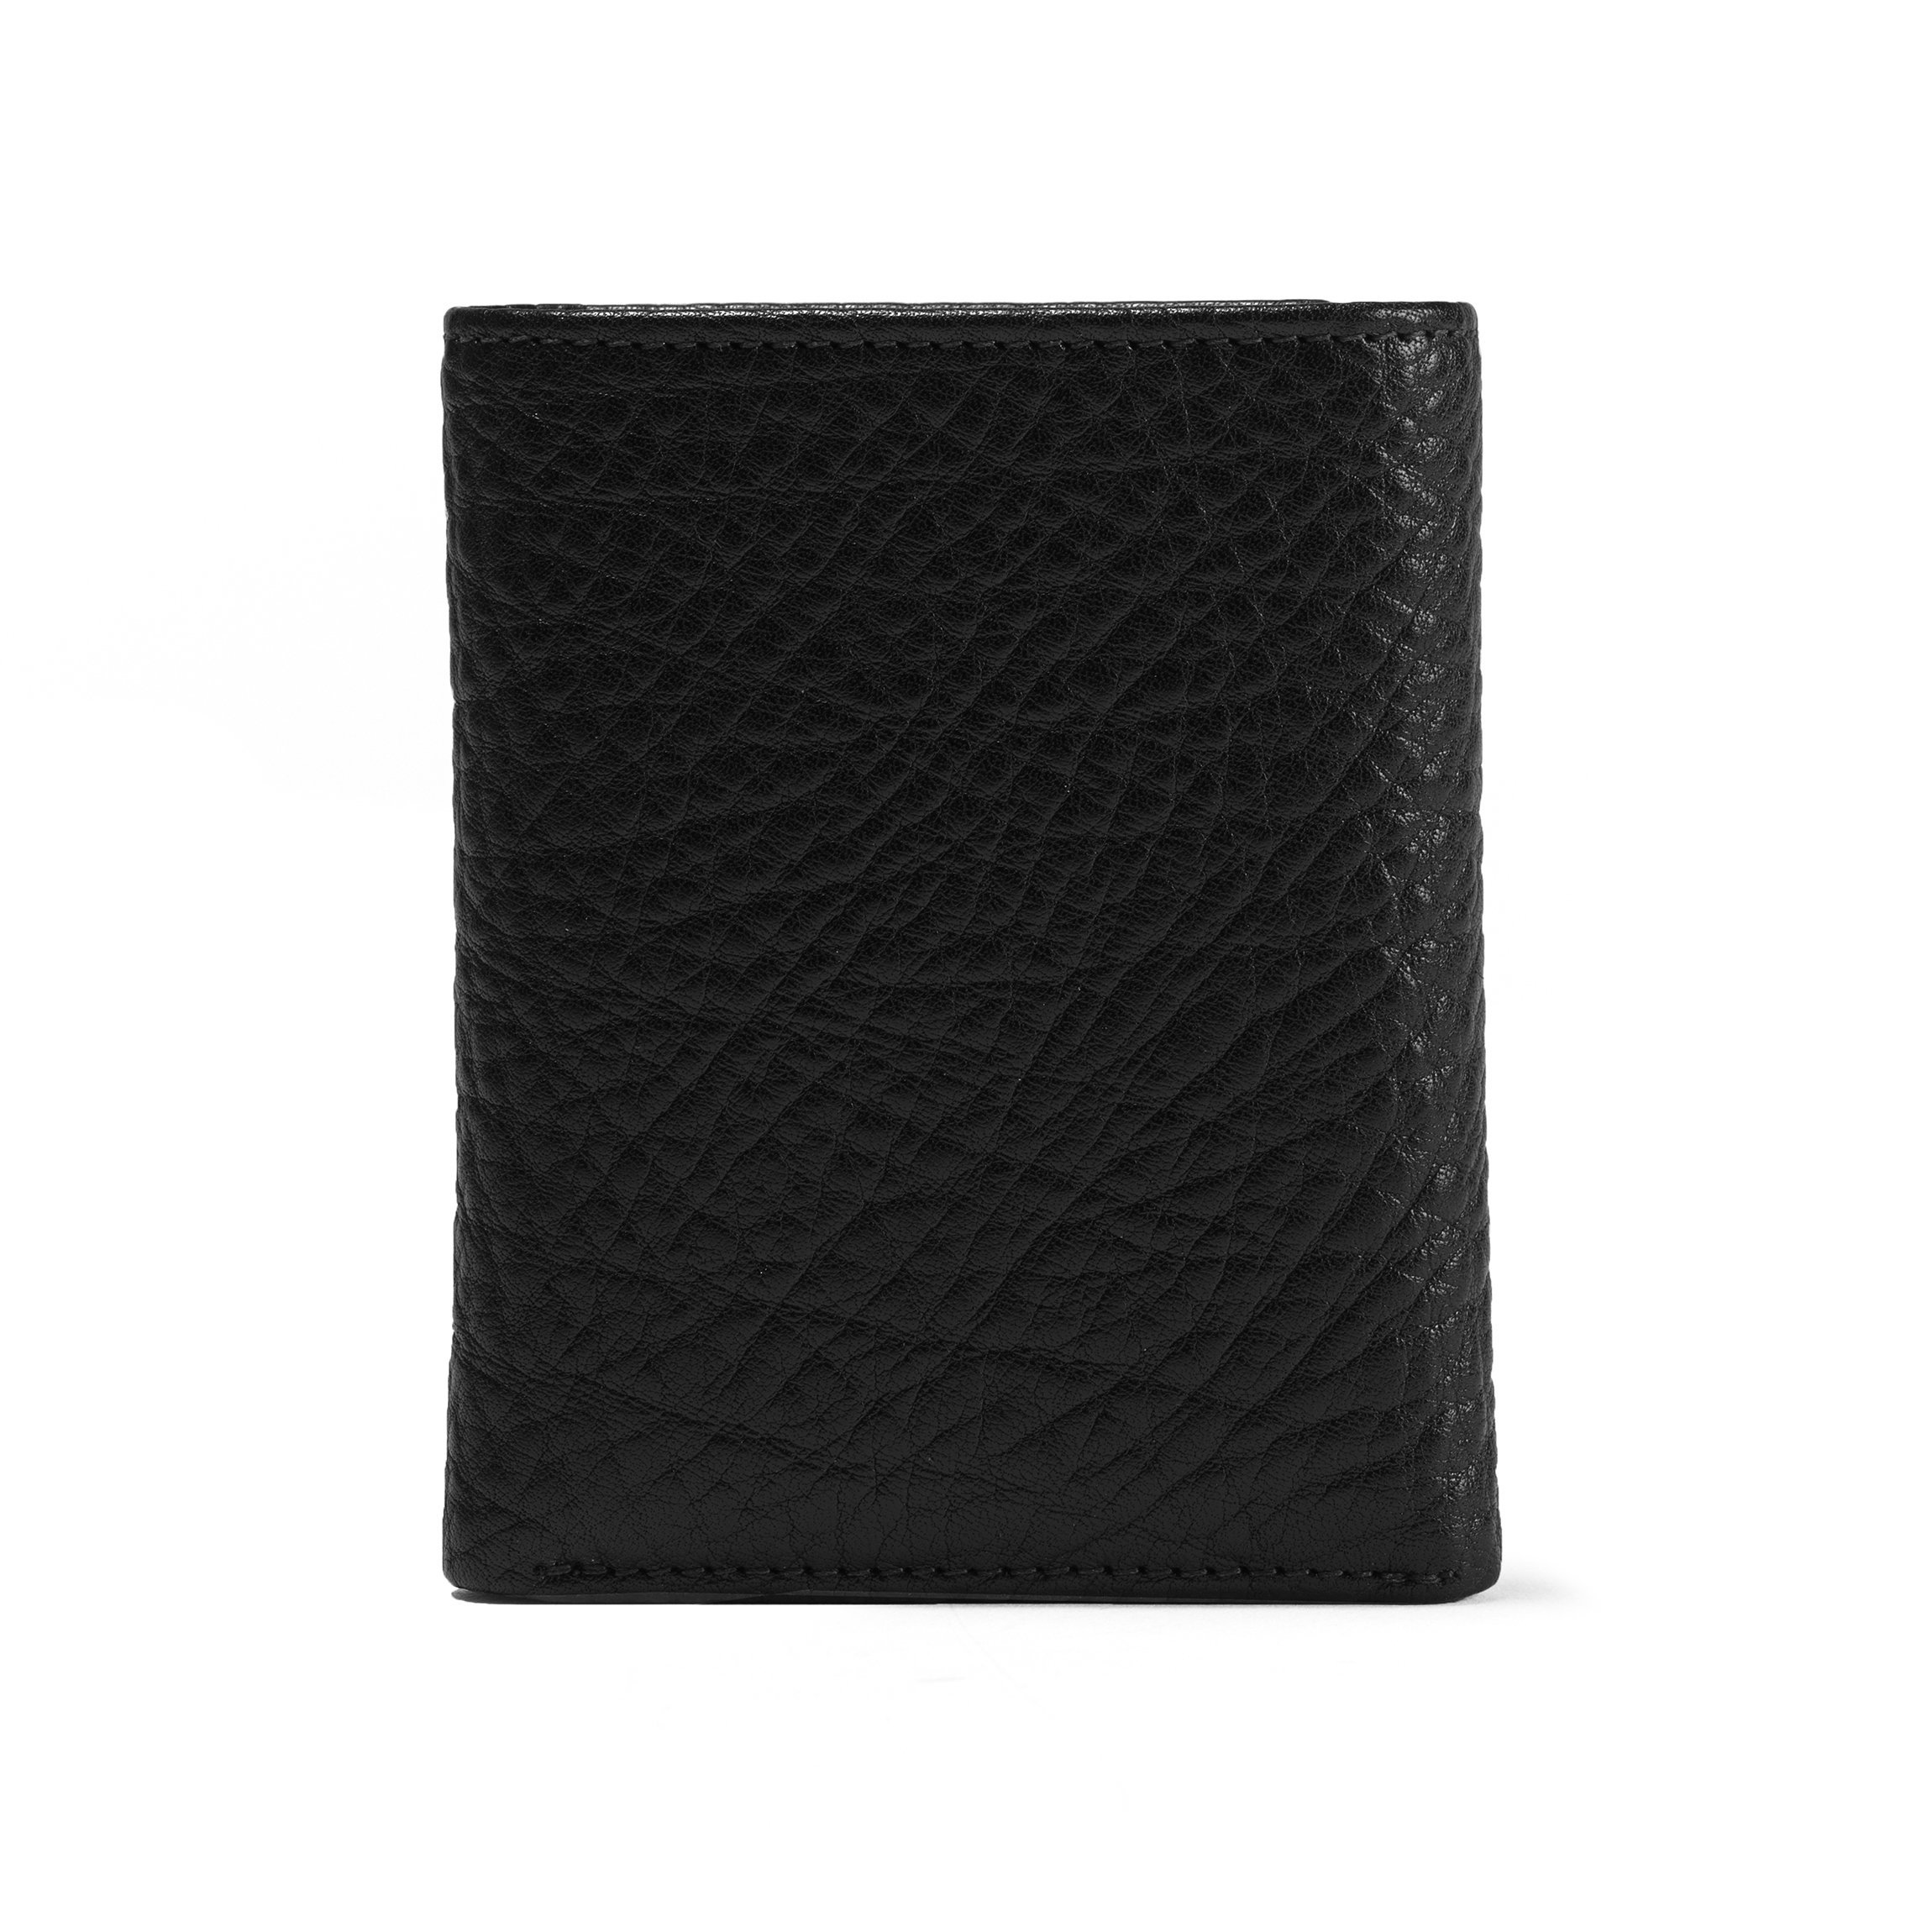 Trifold with Card Wallet - Full Grain Italian Leather Leather - Ebony (black) by Leatherology (Image #7)